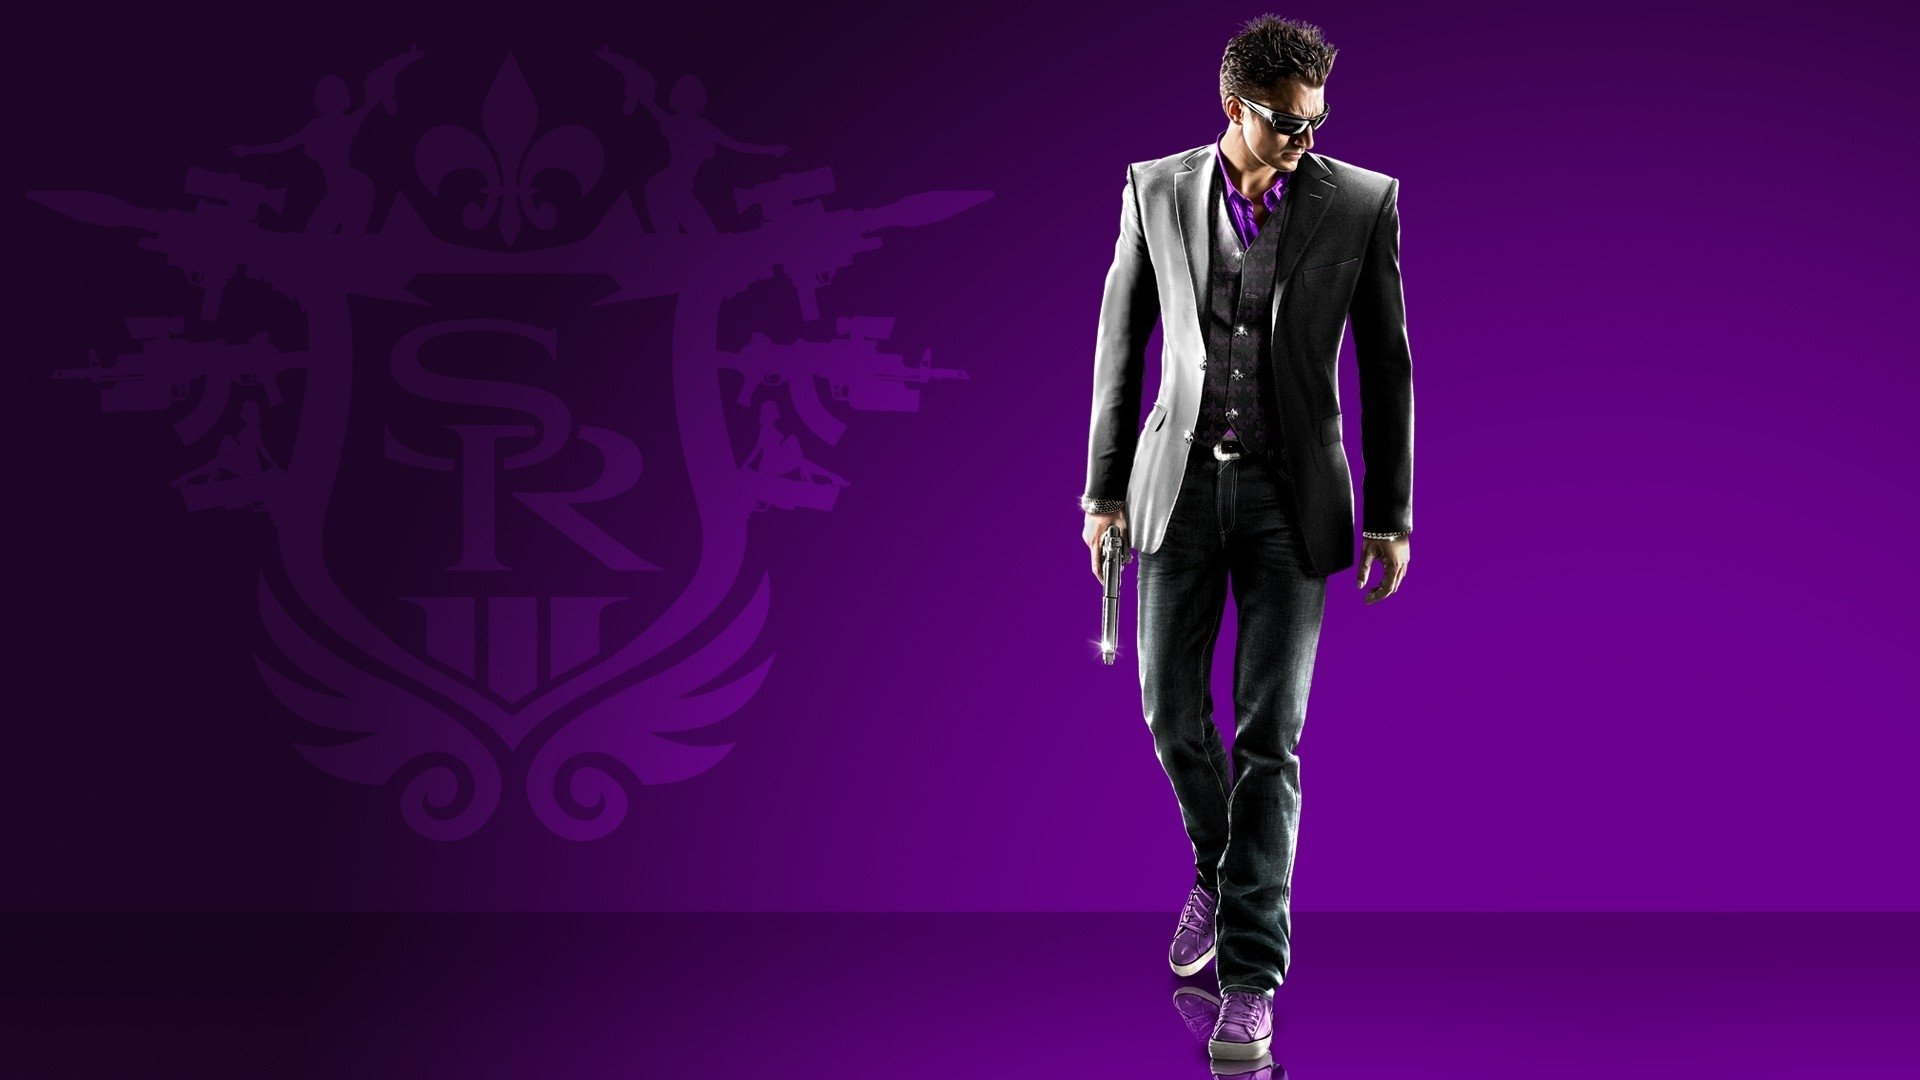 Saints Row The Third Hd Wallpaper Background Image 1920x1080 Id 724105 Wallpaper Abyss